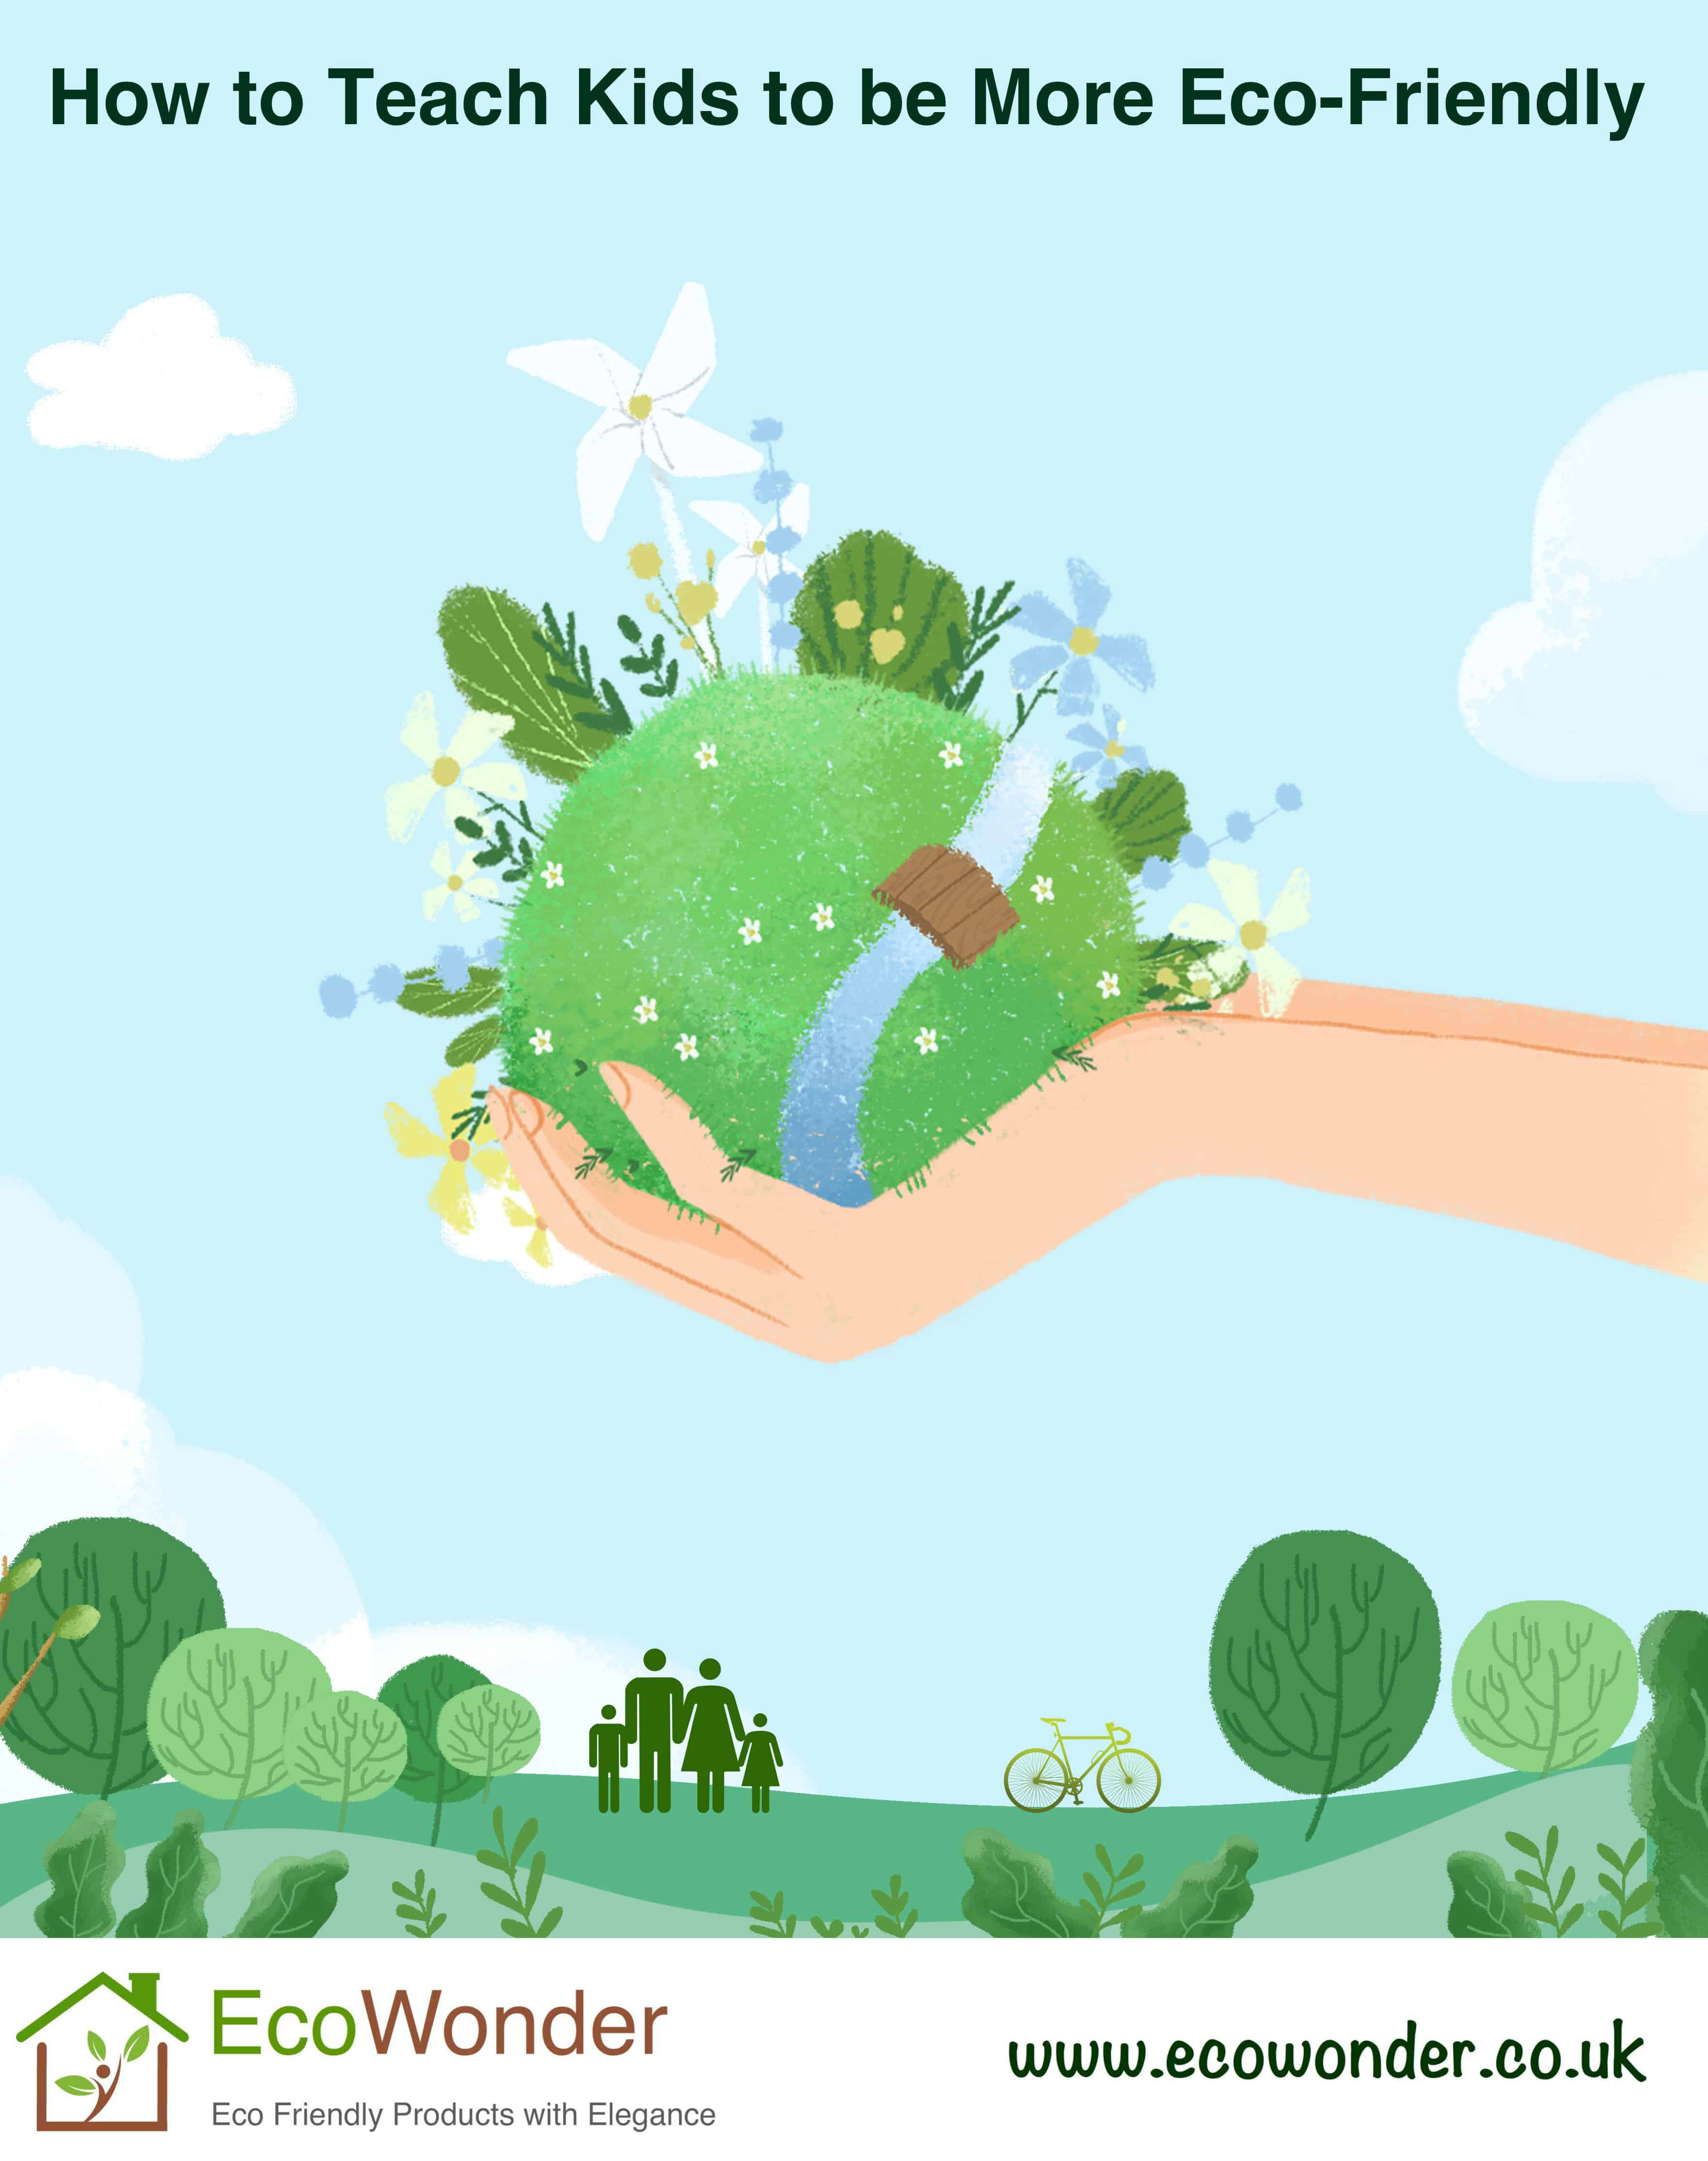 How To Teach Kids To Be More Eco-Friendly?